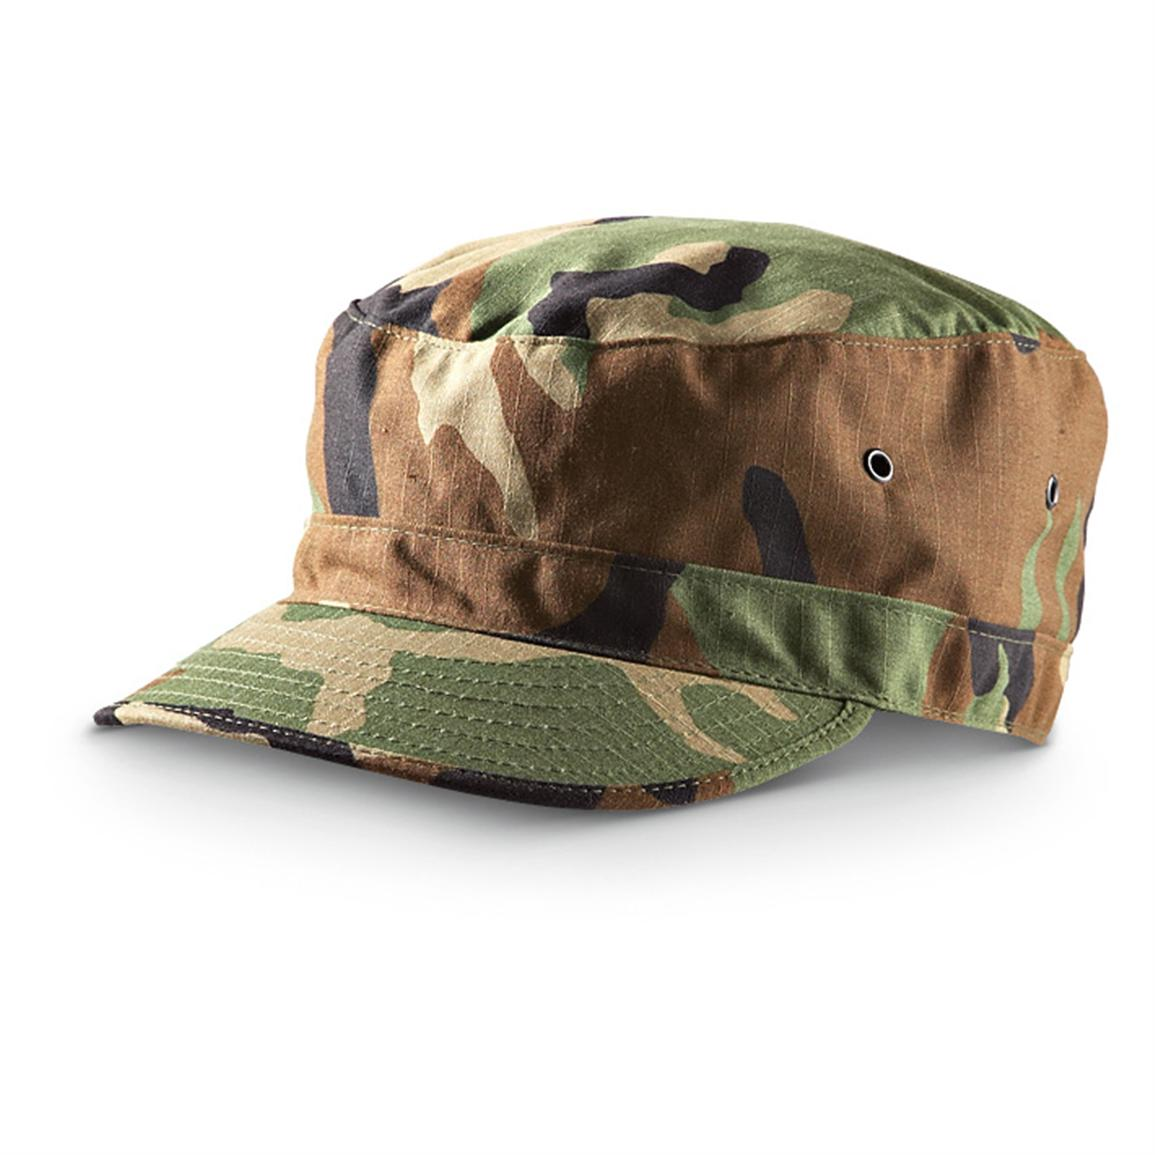 2 HQ ISSUE™ Military-style BDU Combat Hats